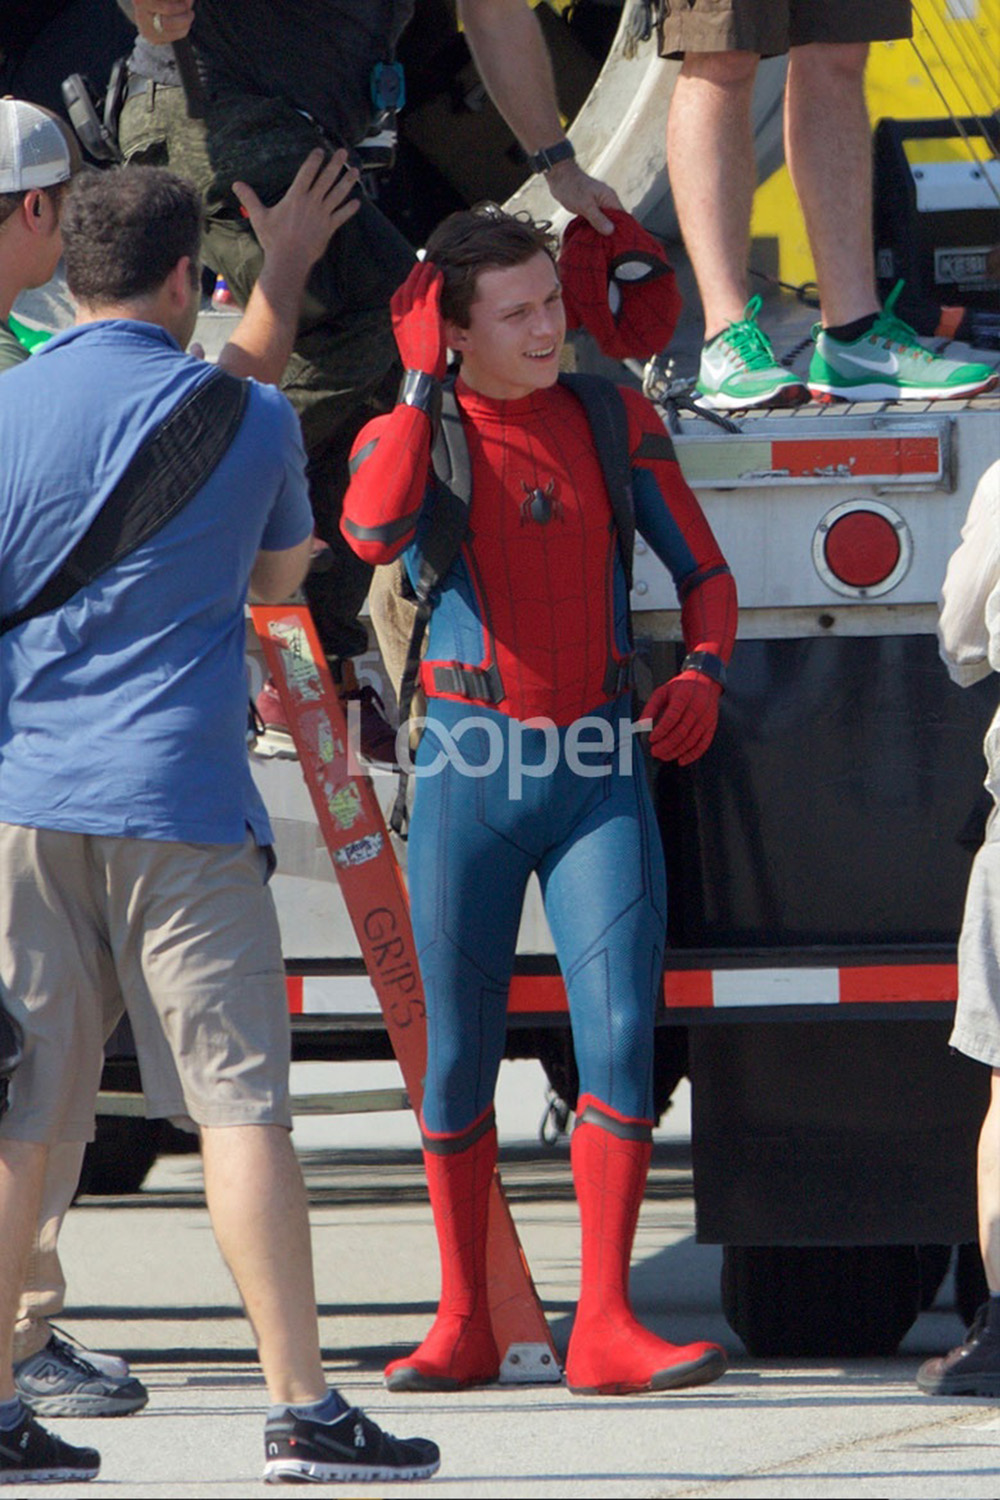 spiderman_Spider-Man: Homecoming Behind The Scenes Pics   Know It All Joe